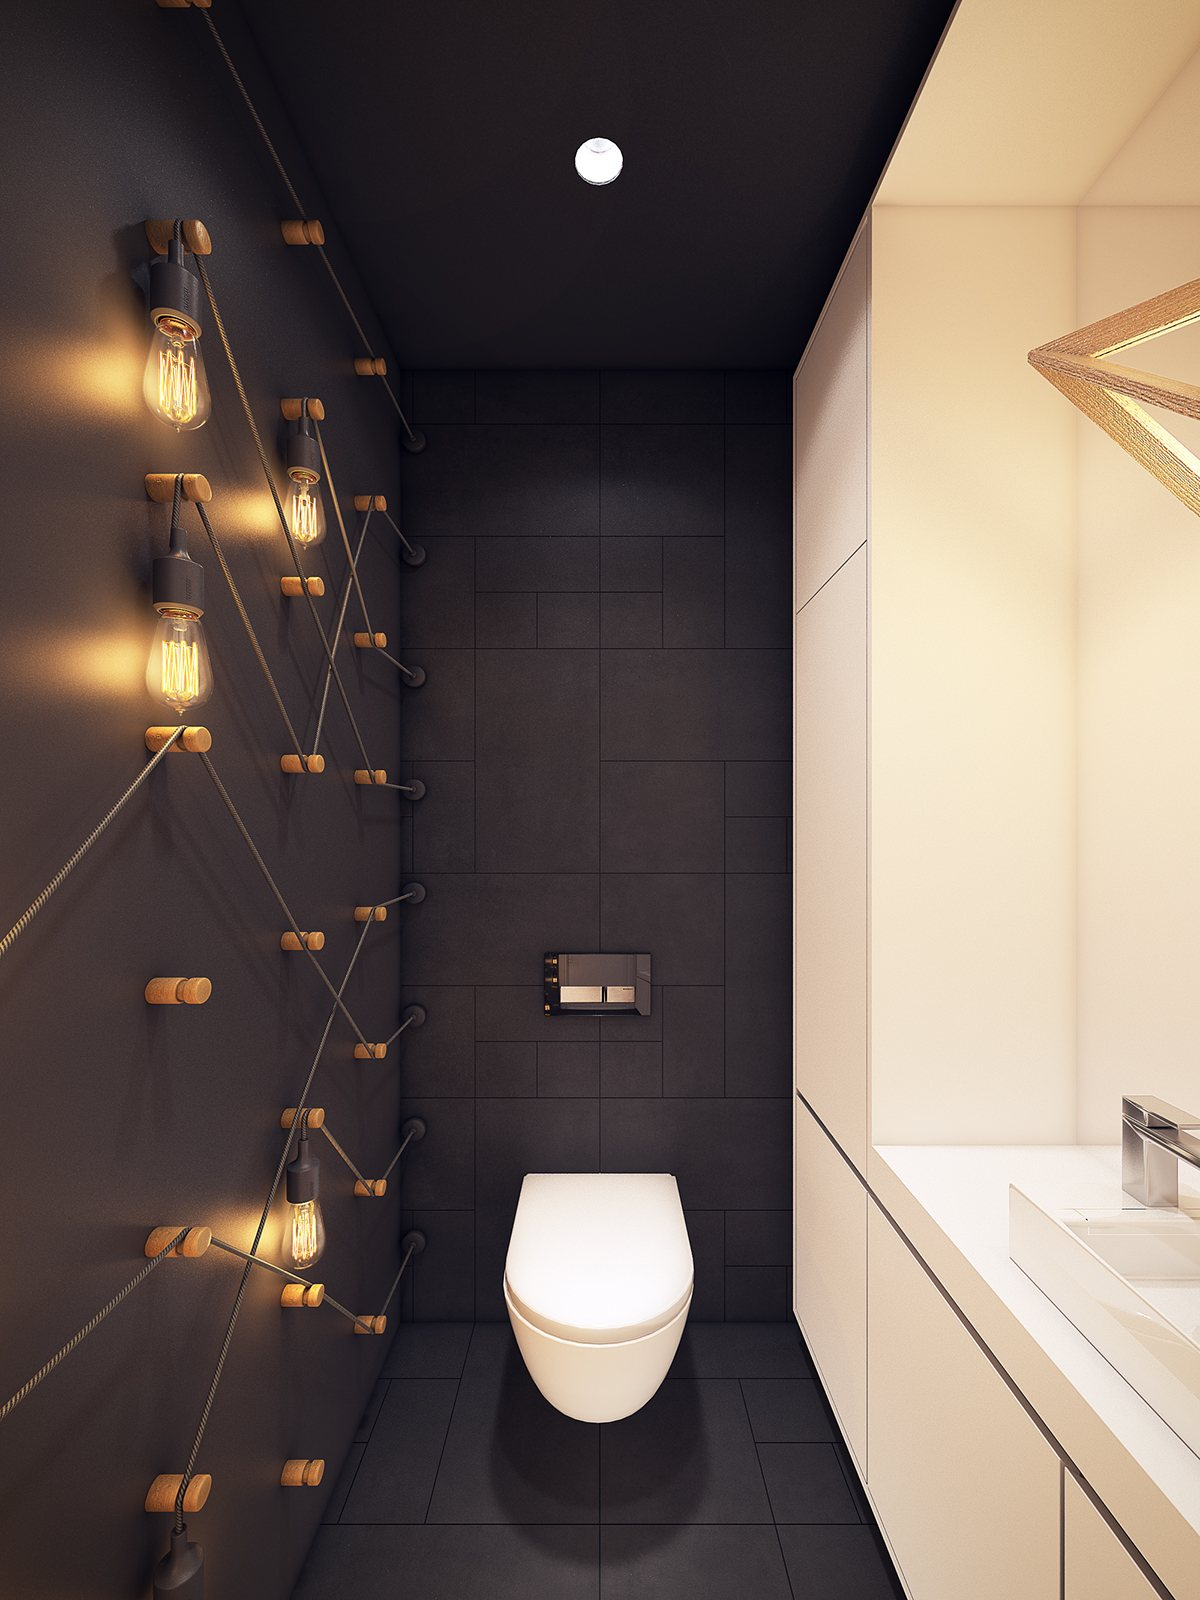 groot modern en bijzonder toilet ontwerp interieur inrichting. Black Bedroom Furniture Sets. Home Design Ideas